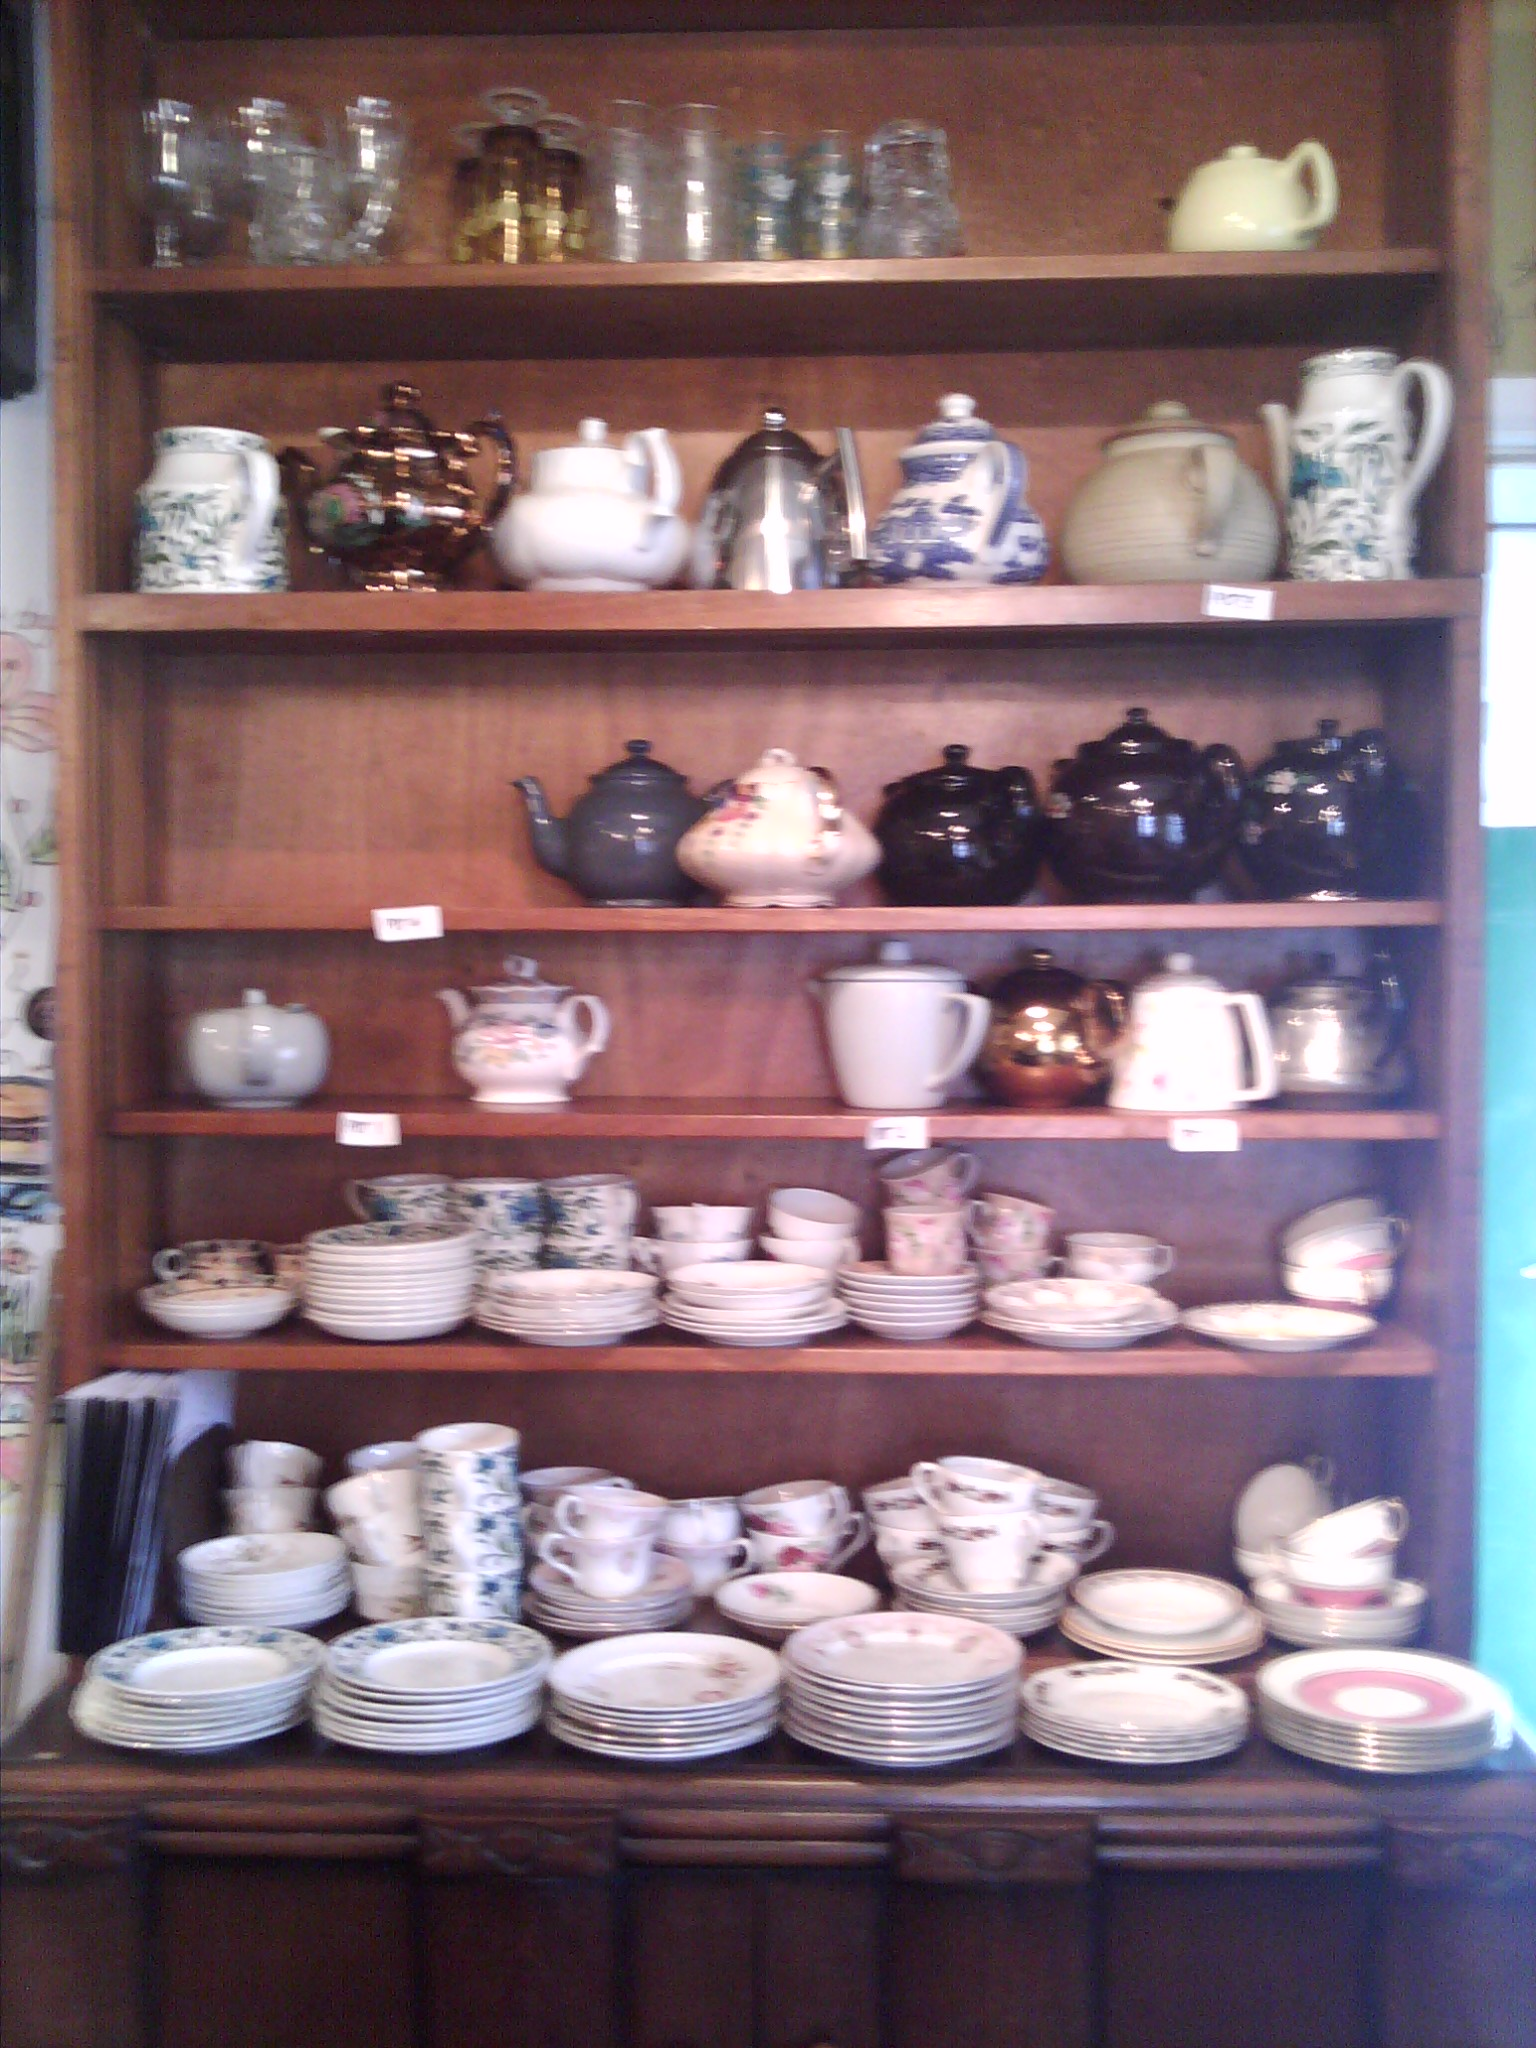 An array of teapots in The teashop by the canal